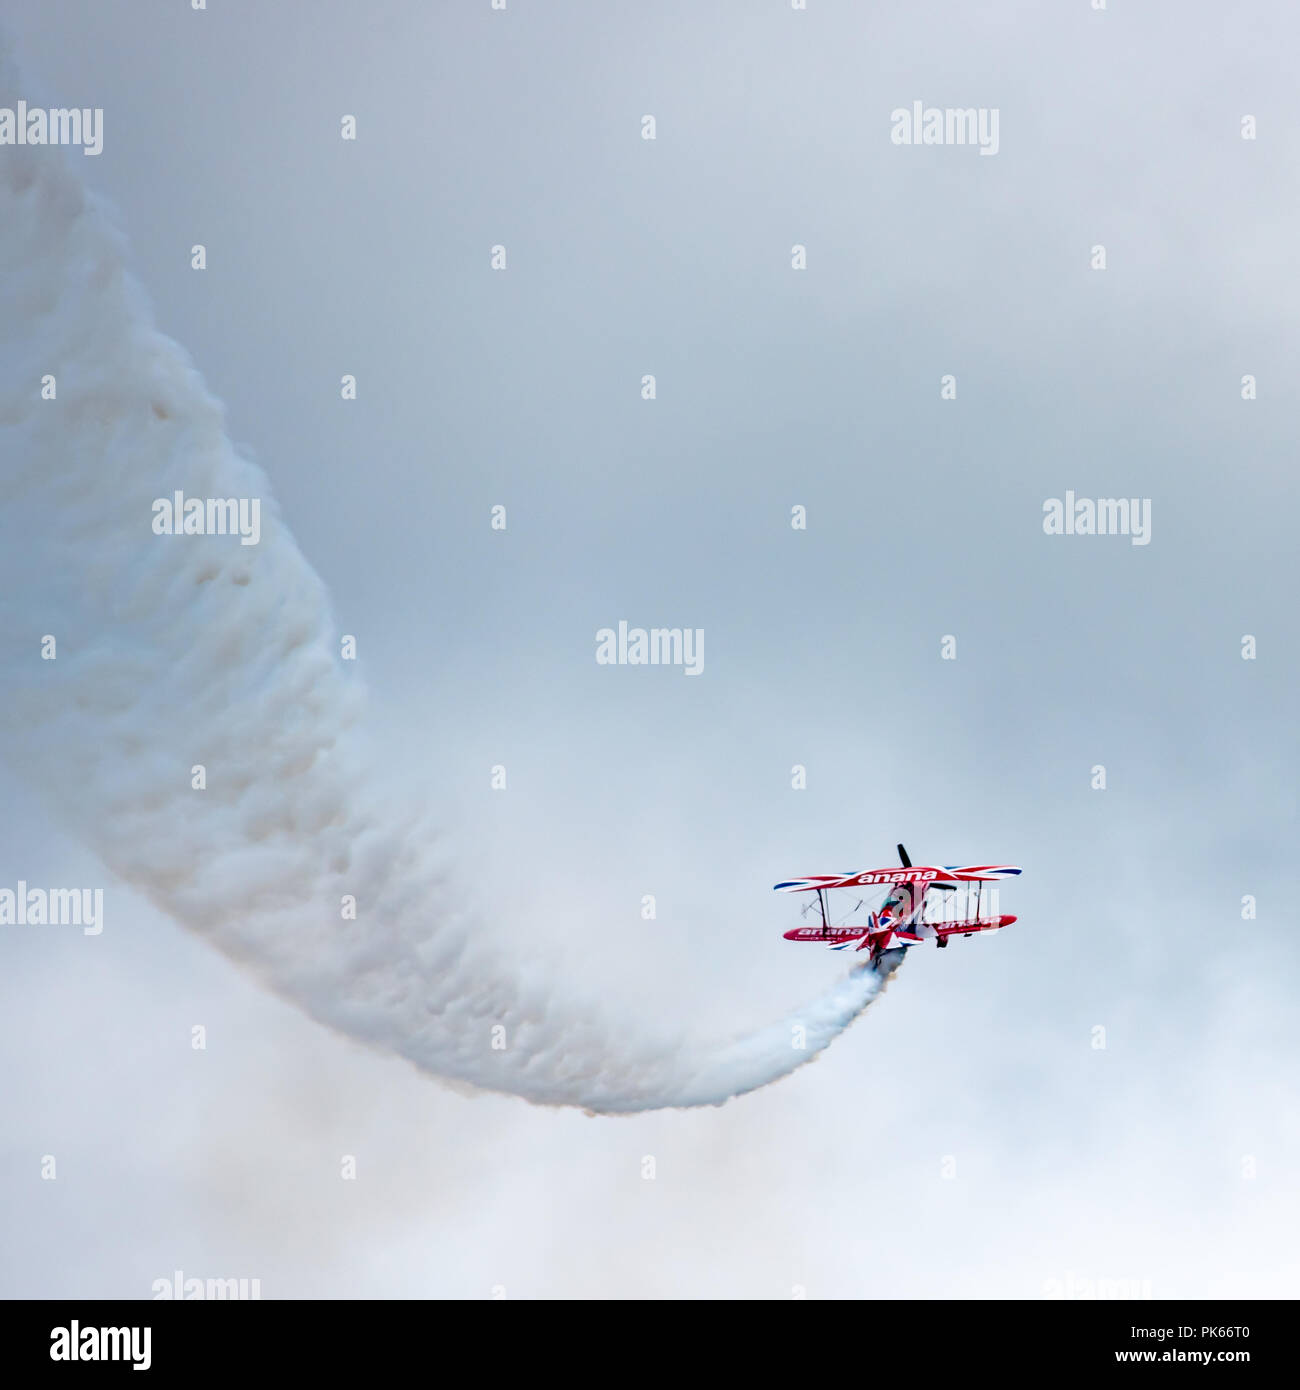 A Pitts Special S2S Biplane traces a path across a darkening sky - Stock Image